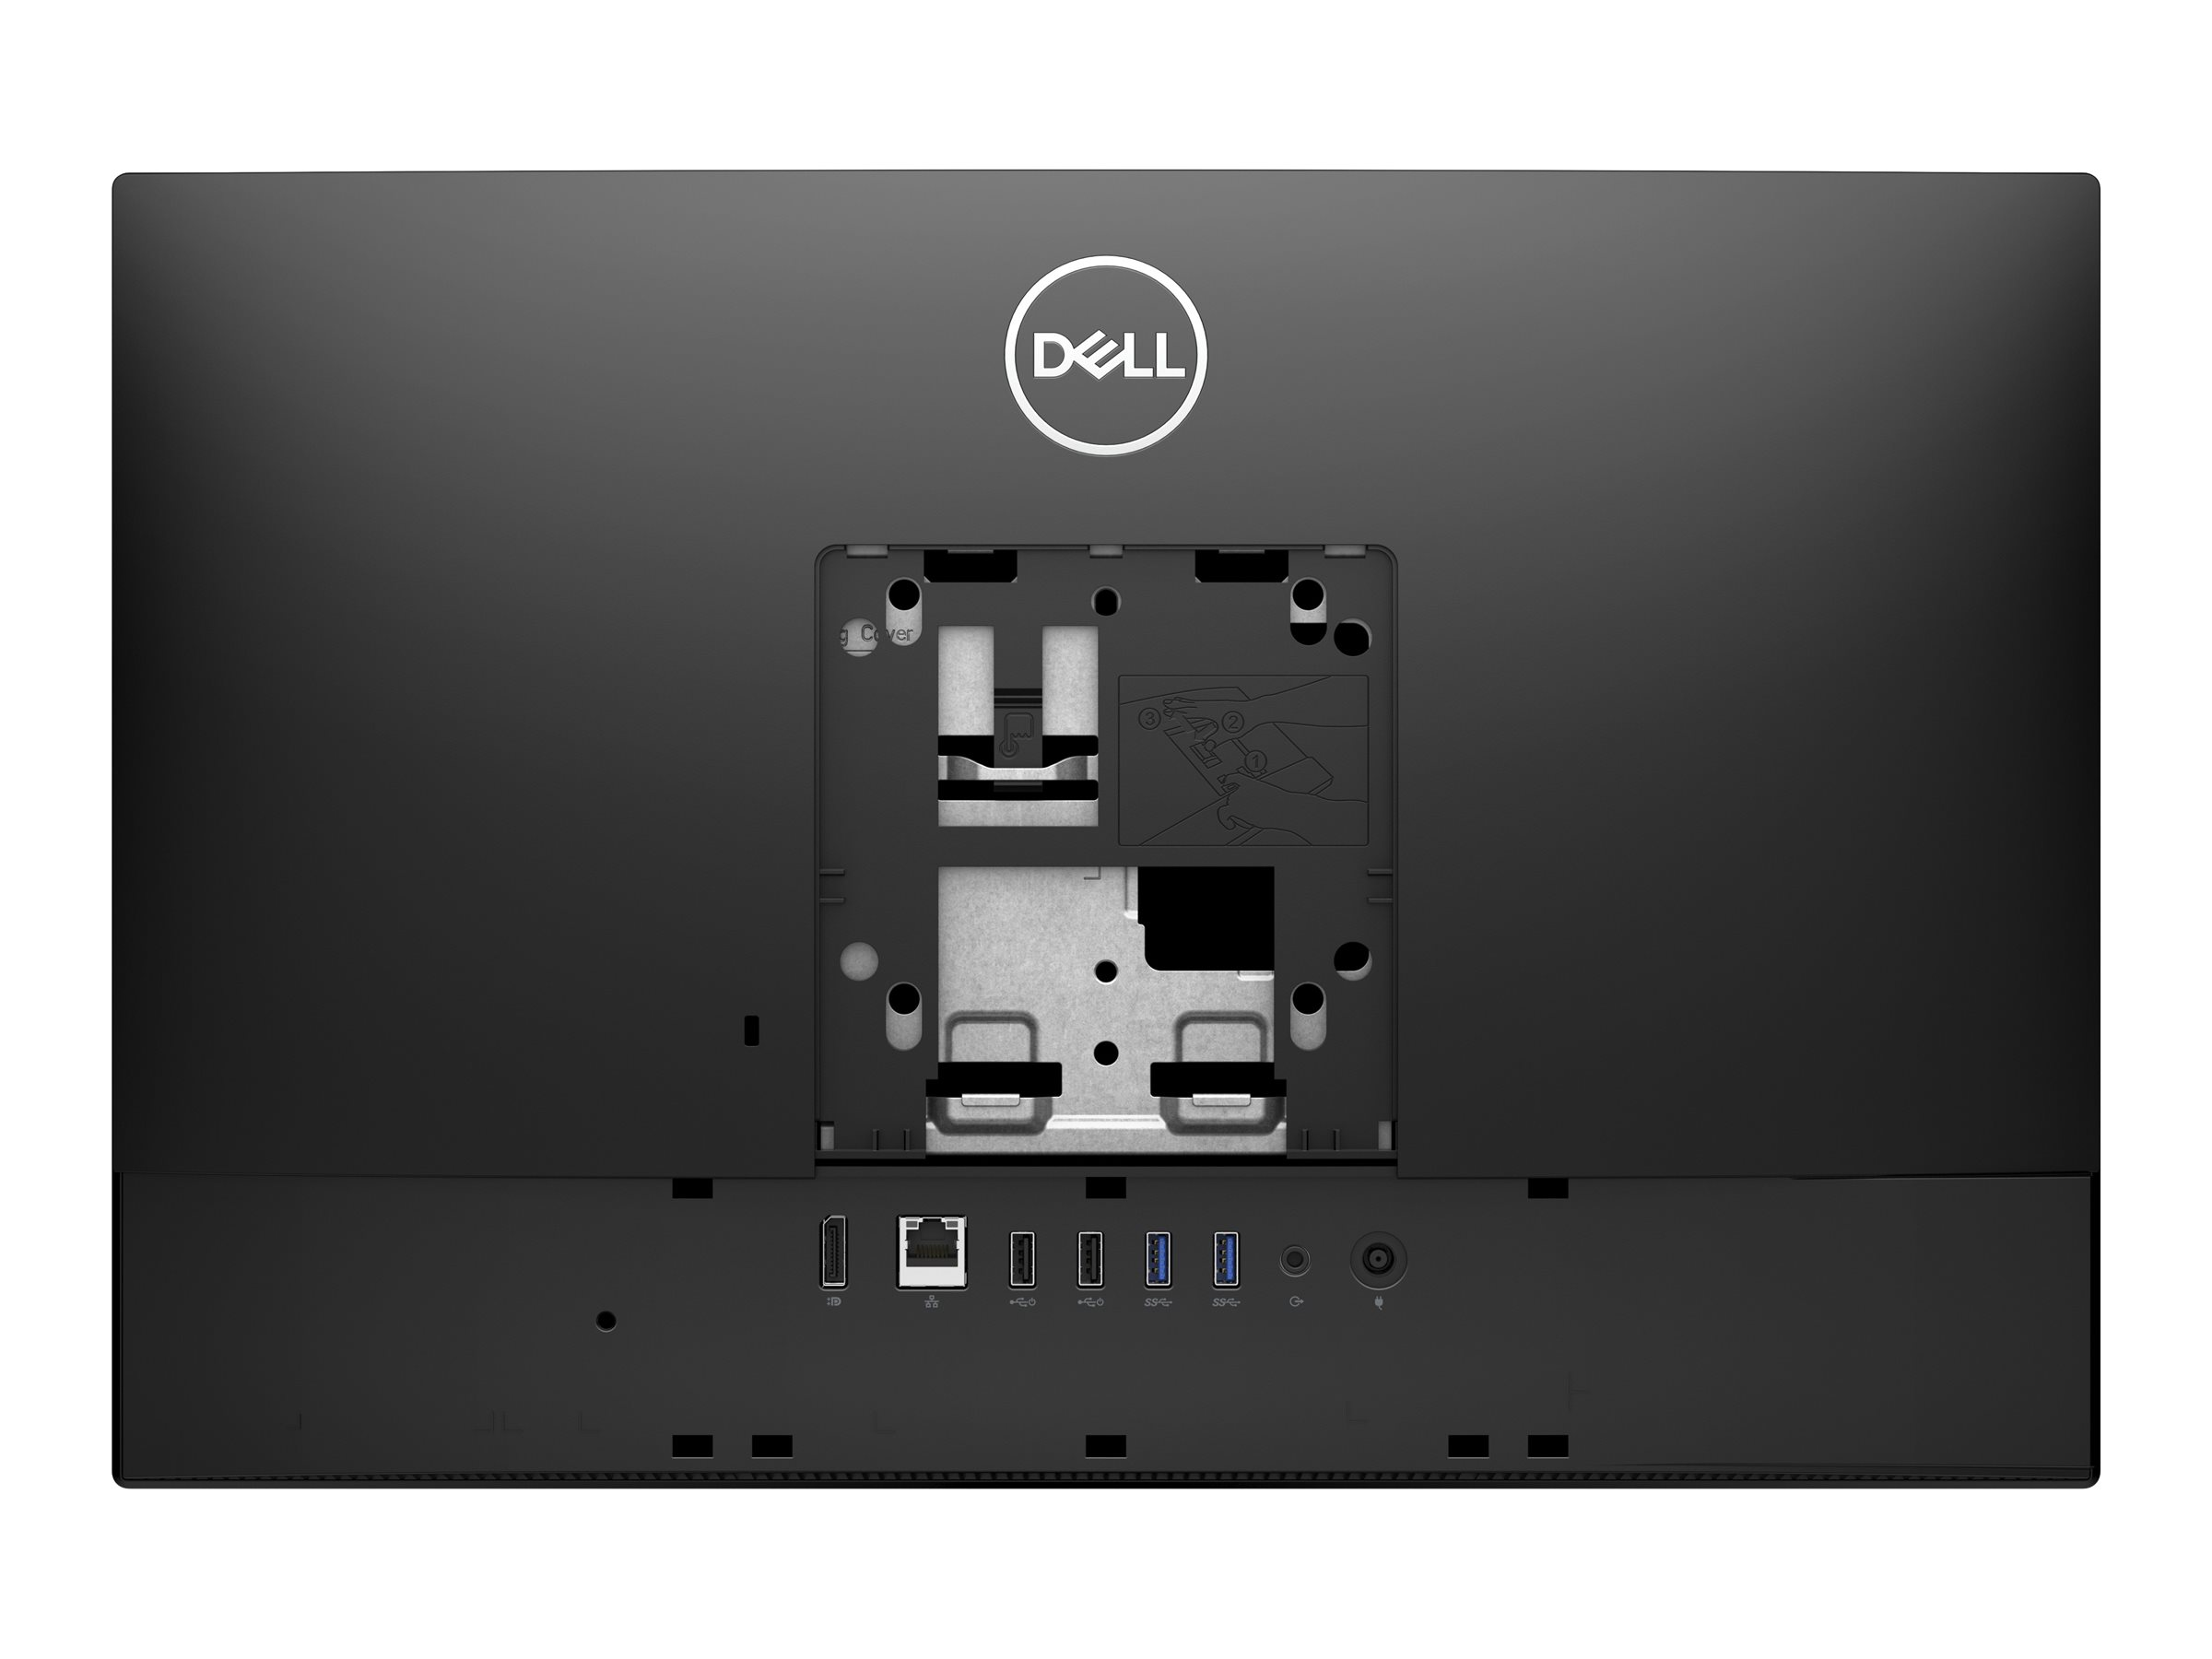 Dell OptiPlex 3280 All In One - all-in-one - Core i5 10500T 2.3 GHz - 8 GB - HDD 500 GB - LED 21.5